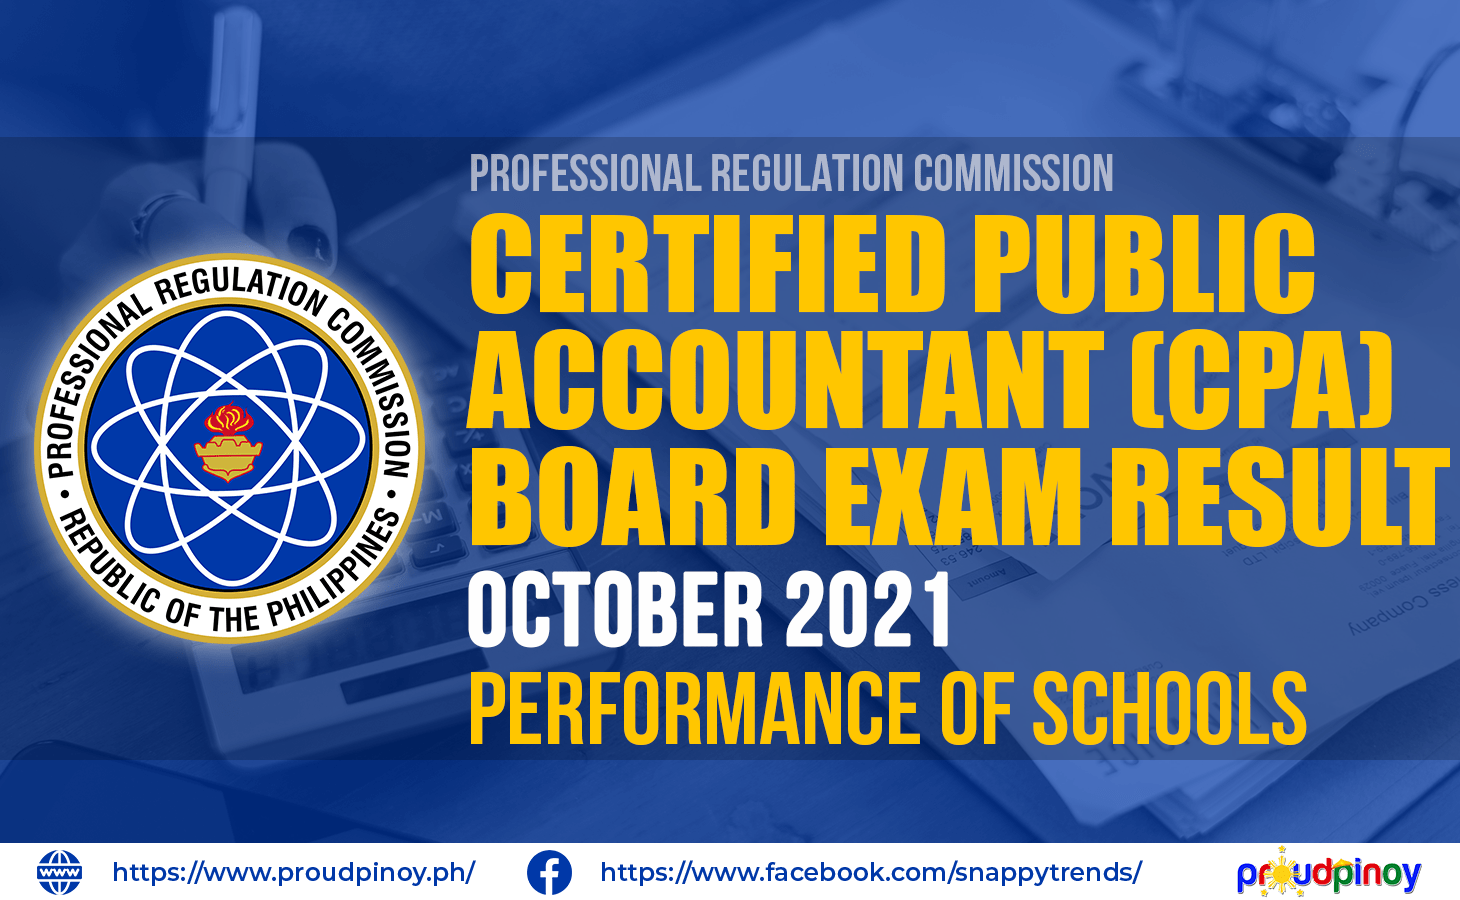 CPA Board Exam Results October 2021 - Performance of Schools